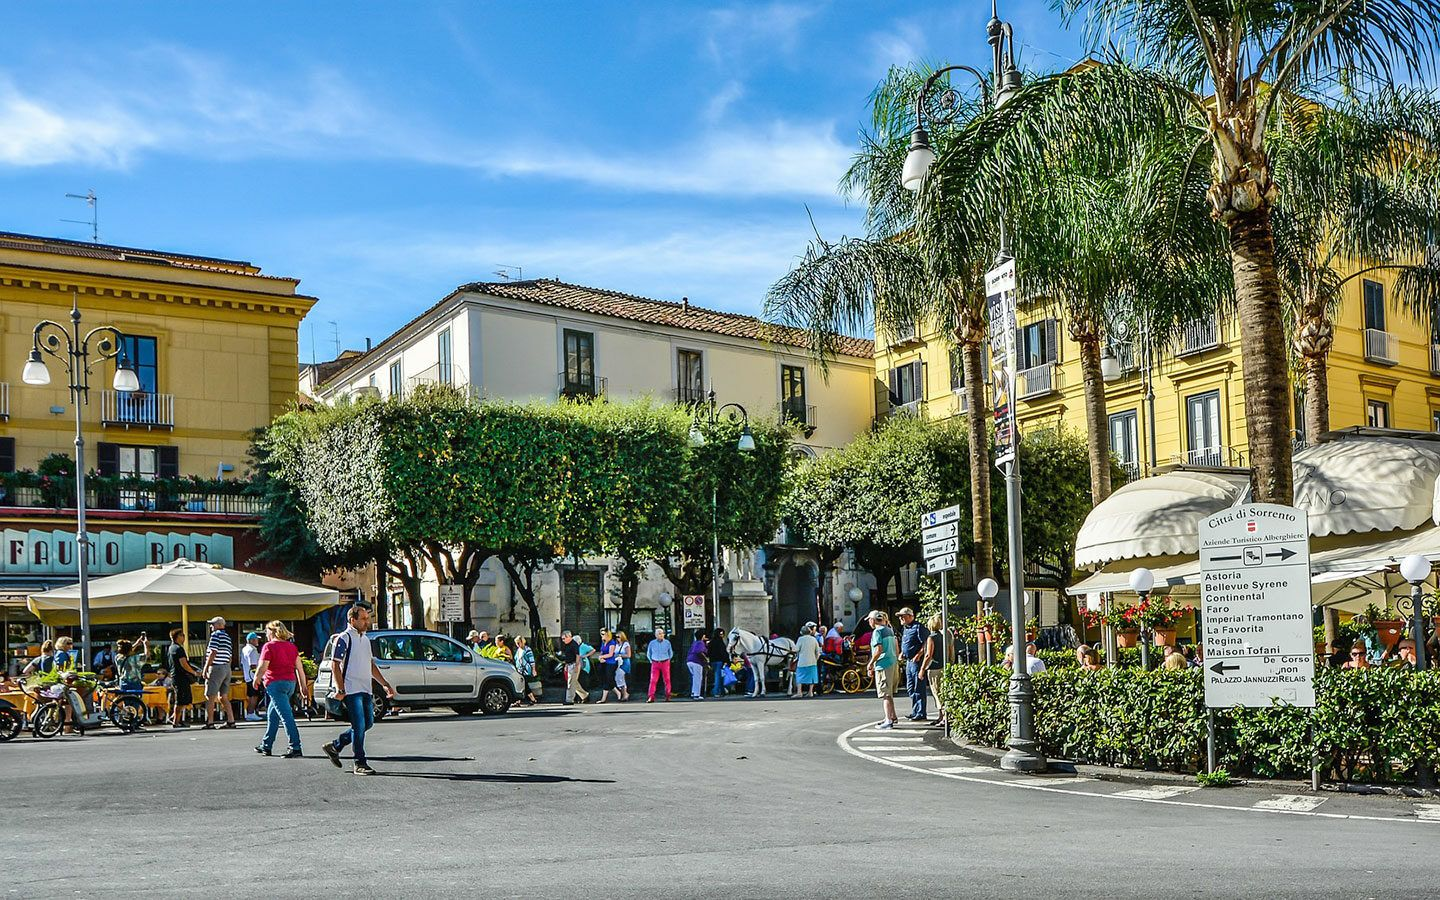 Piazza Tasso, a top people watching spot in Sorrento